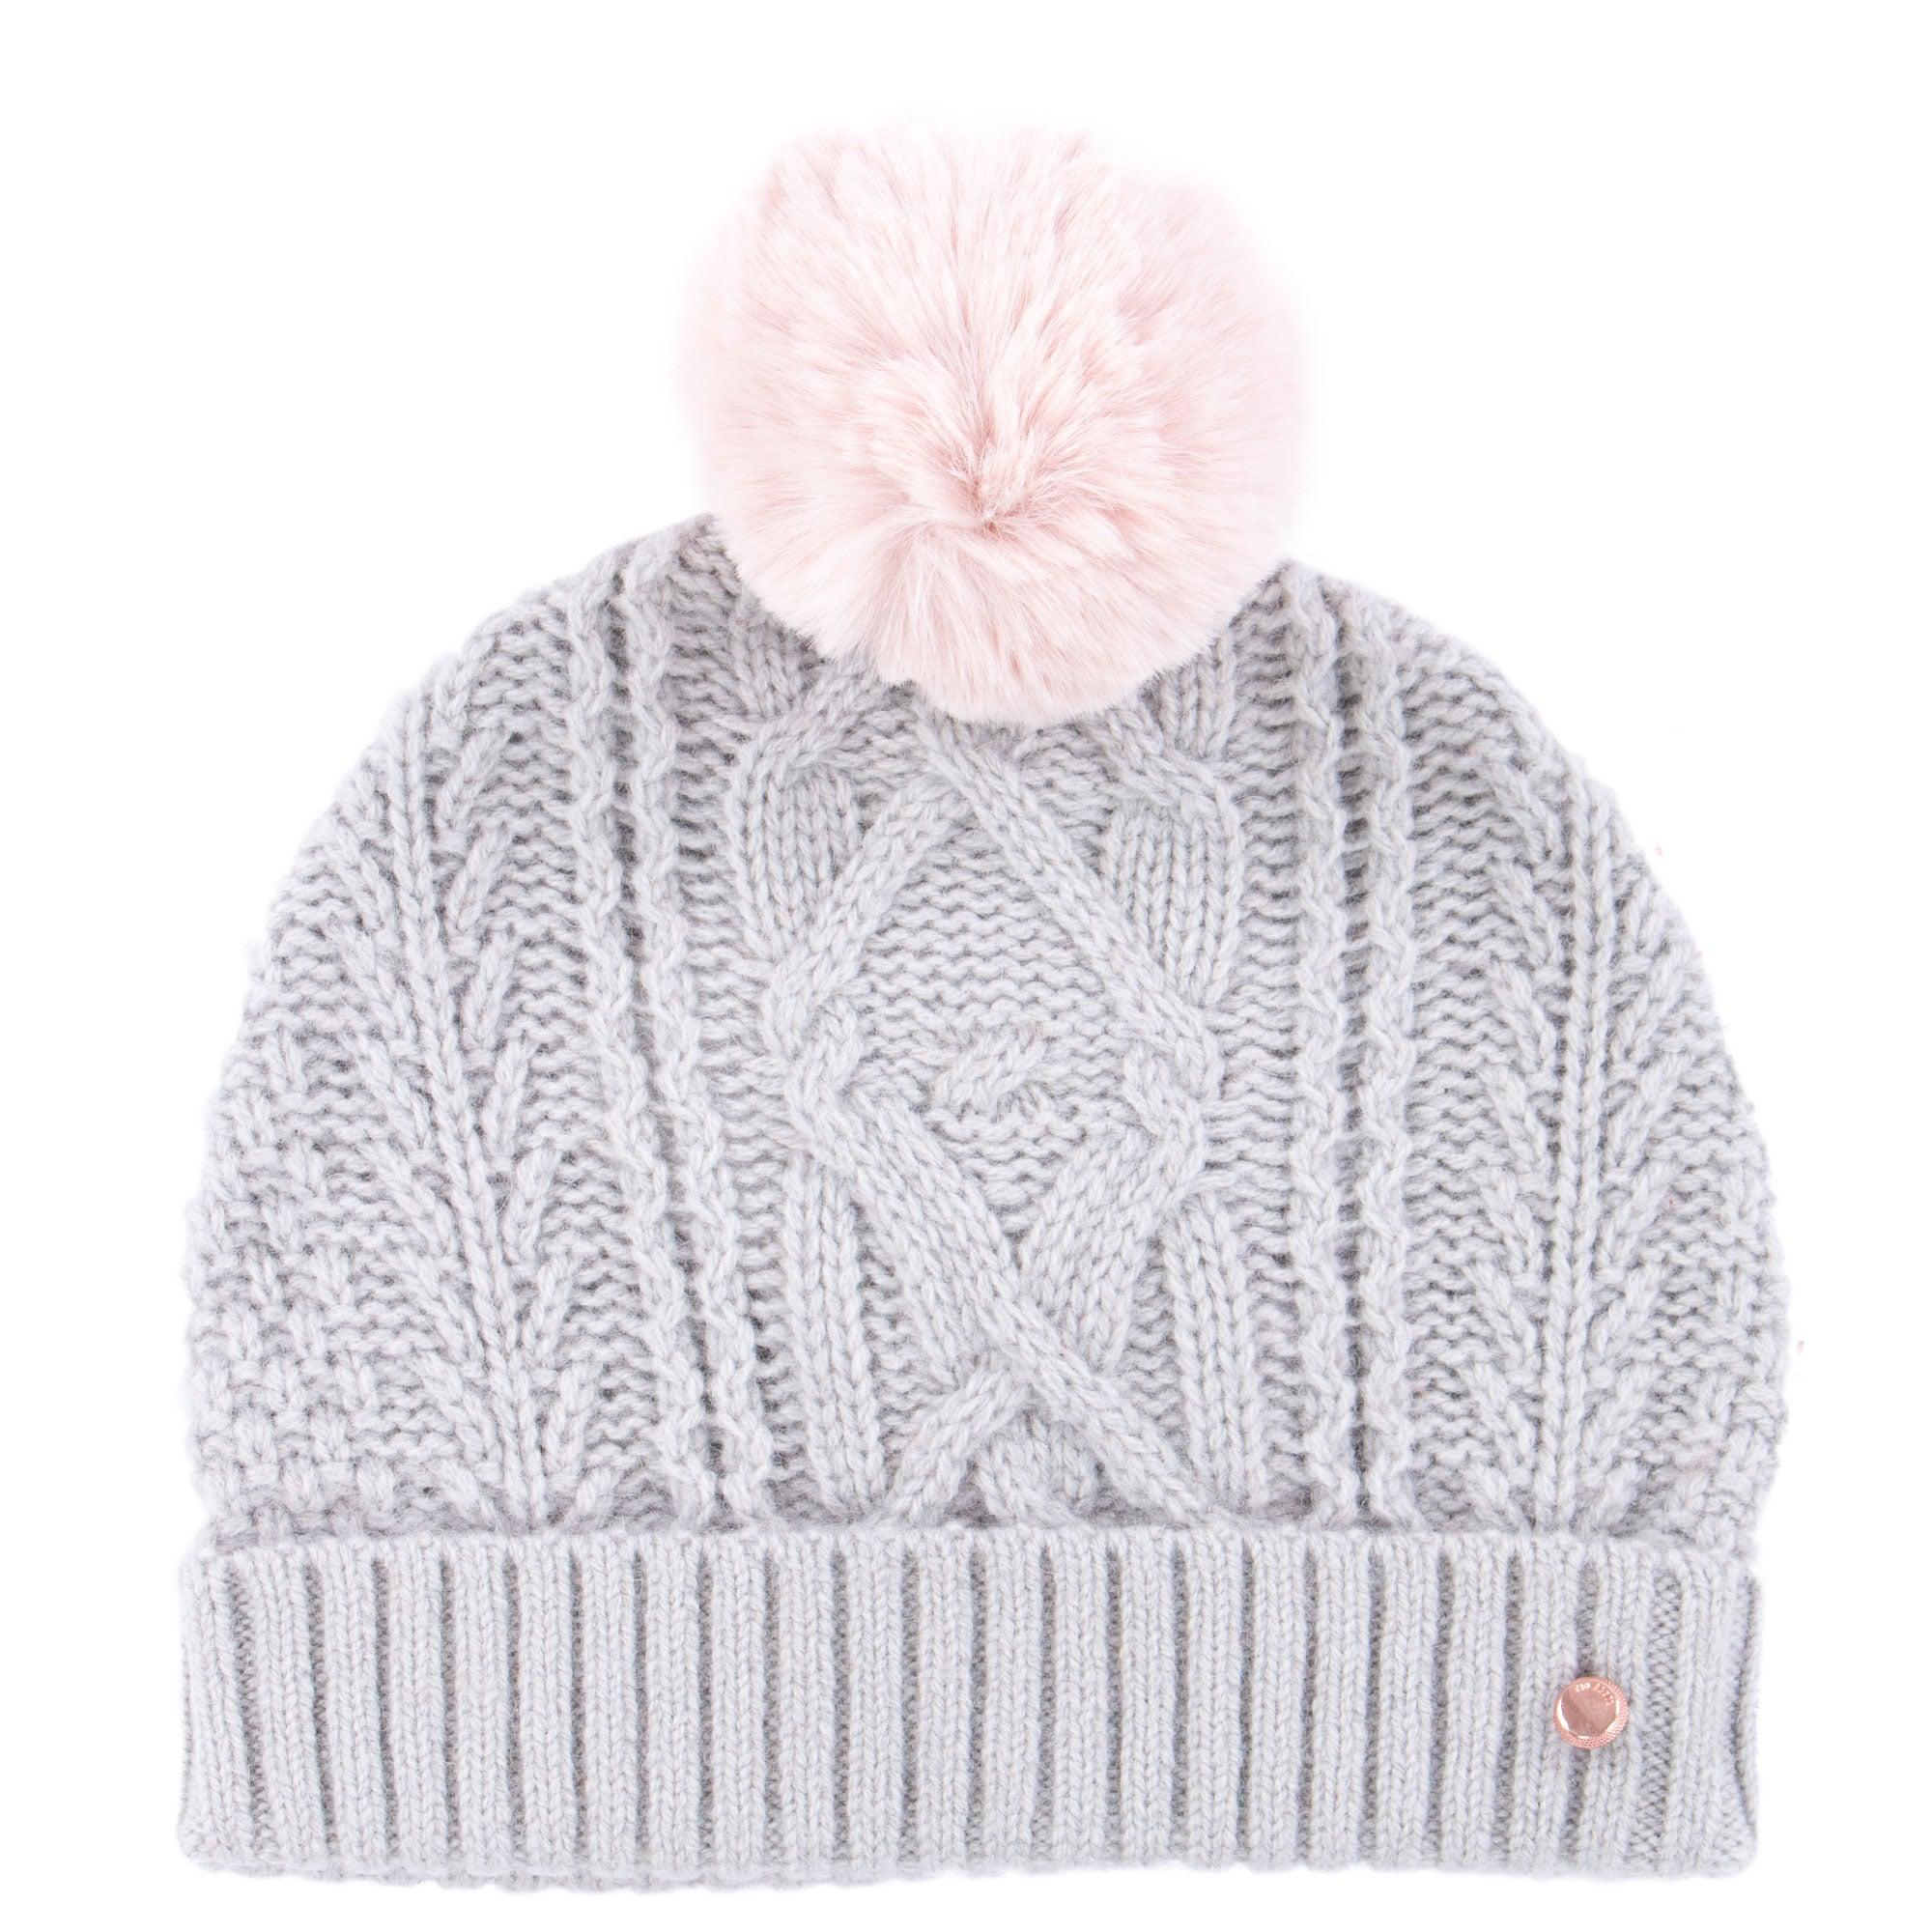 Ted Baker Kyliee Bobble Hat in Gray - Lyst d4874f2f88d